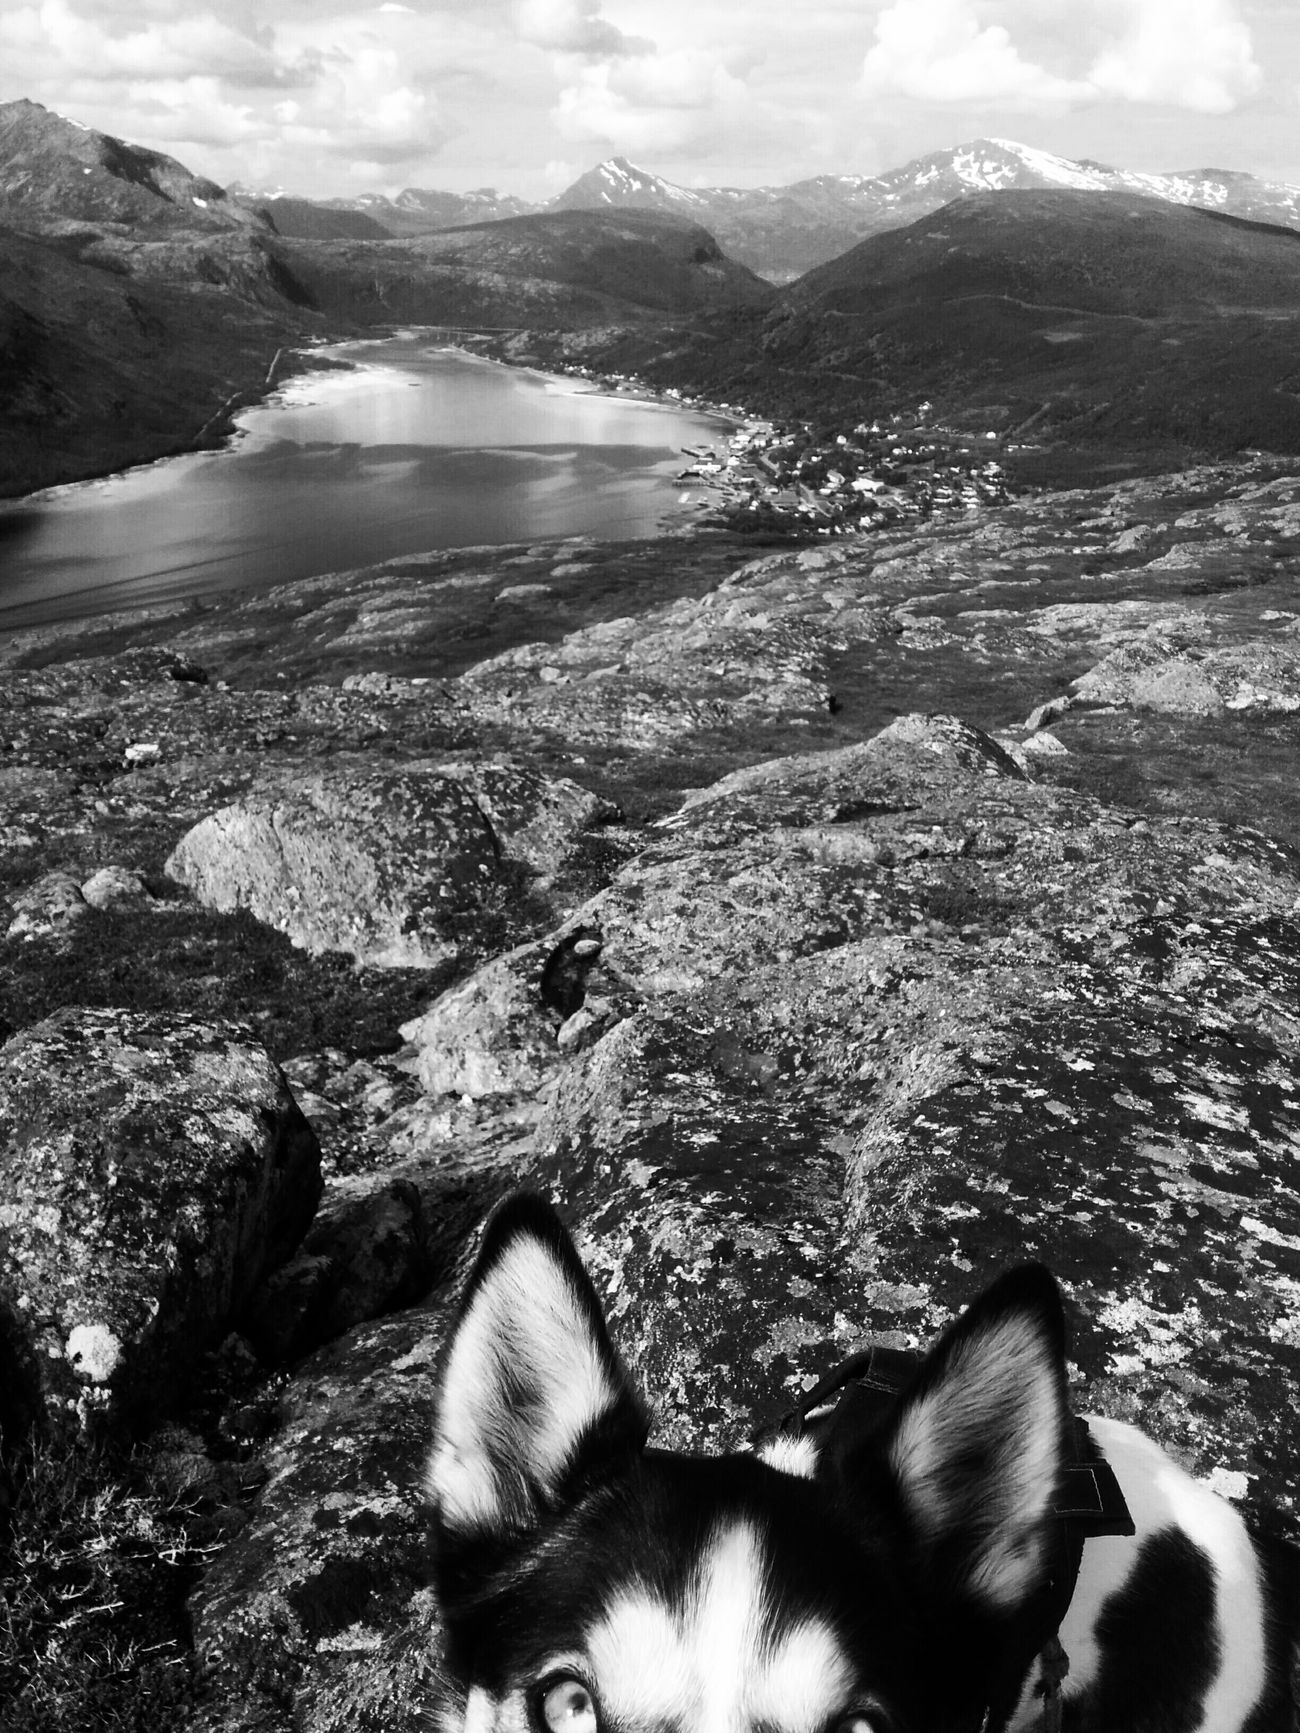 Photobombed by Alaskan Husky Blackandwhite Photography Black And White Bw_collection Black & White Bw_lover BW_photography Animal